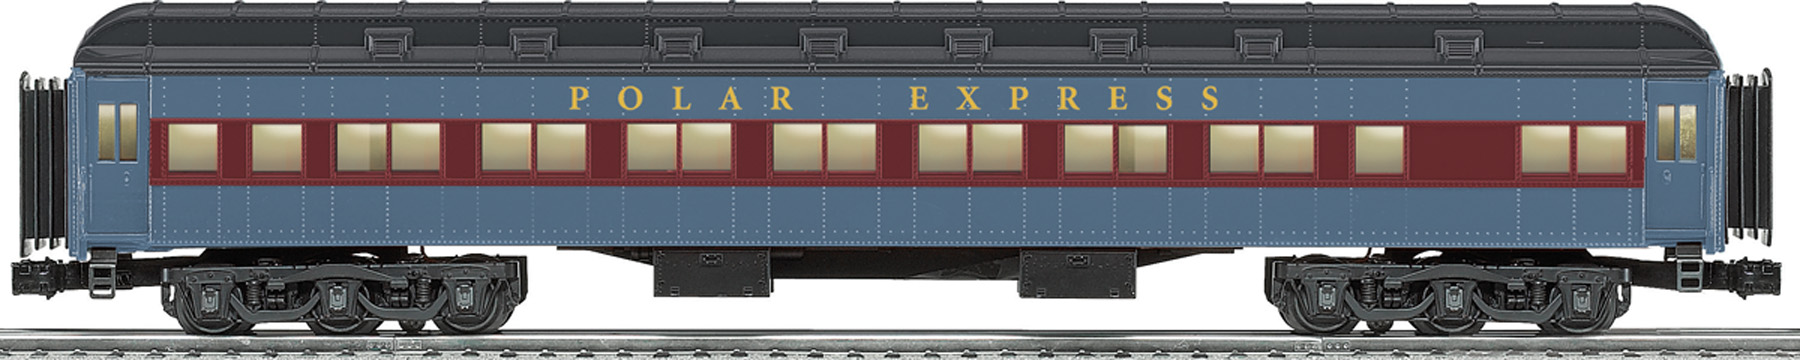 The Polar Express Trade Abandoned Toy Heavyweight Passenger Car